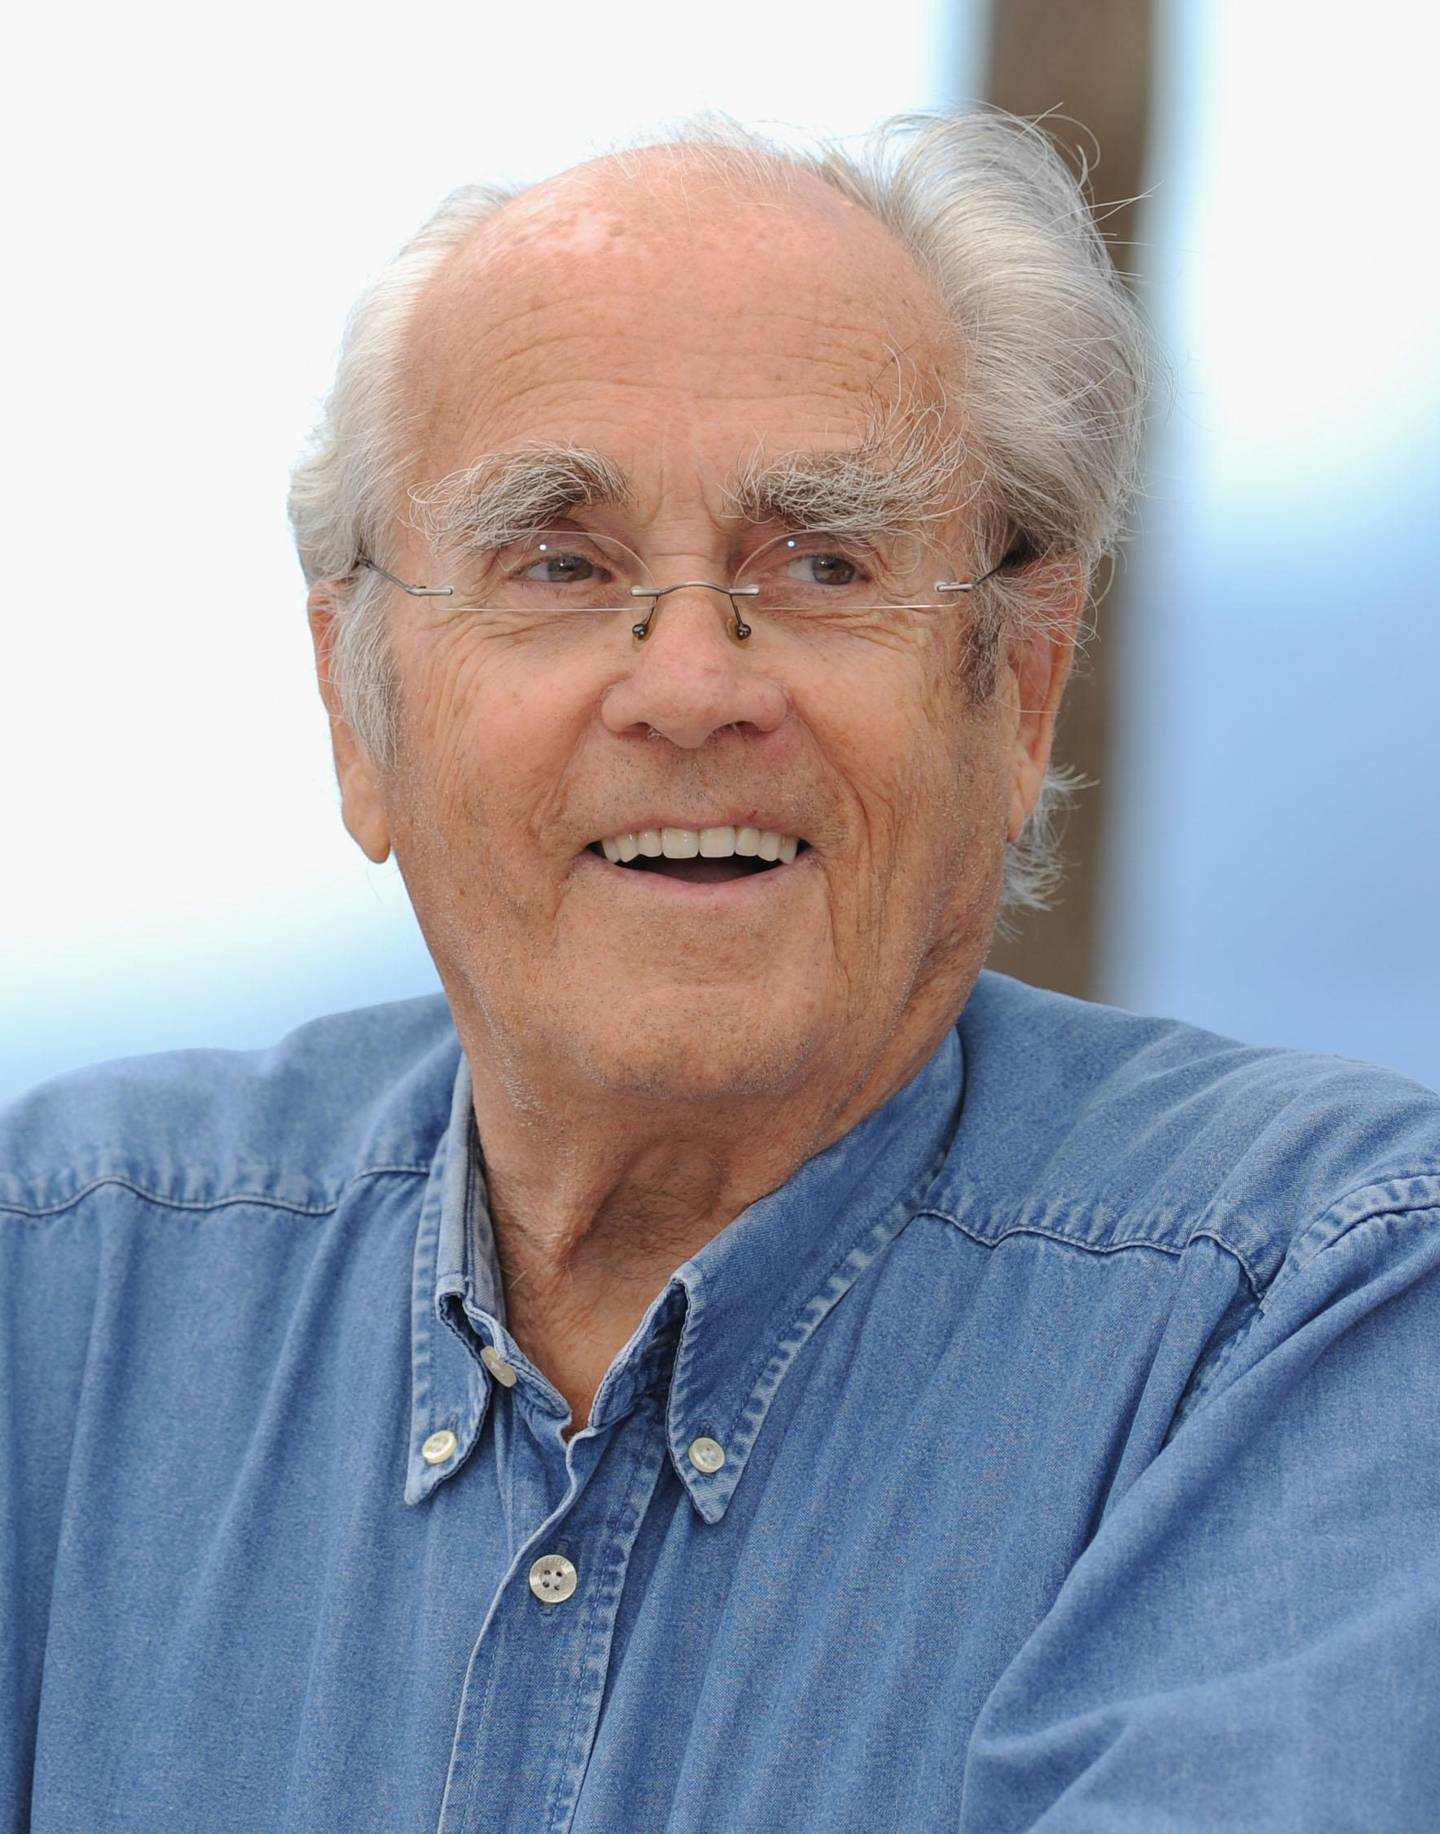 FILE - JANUARY 26: Oscar-winning composer Michel Legrand passed away on January 26, 2019 in Paris, France.  He was 86 years old. CANNES, FRANCE - MAY 23:  Michel Legrand attends the 'Max Rose' photocall during The 66th Annual Cannes Film Festival at the Palais des Festivals on May 23, 2013 in Cannes, France.  (Photo by Stuart C. Wilson/Getty Images)